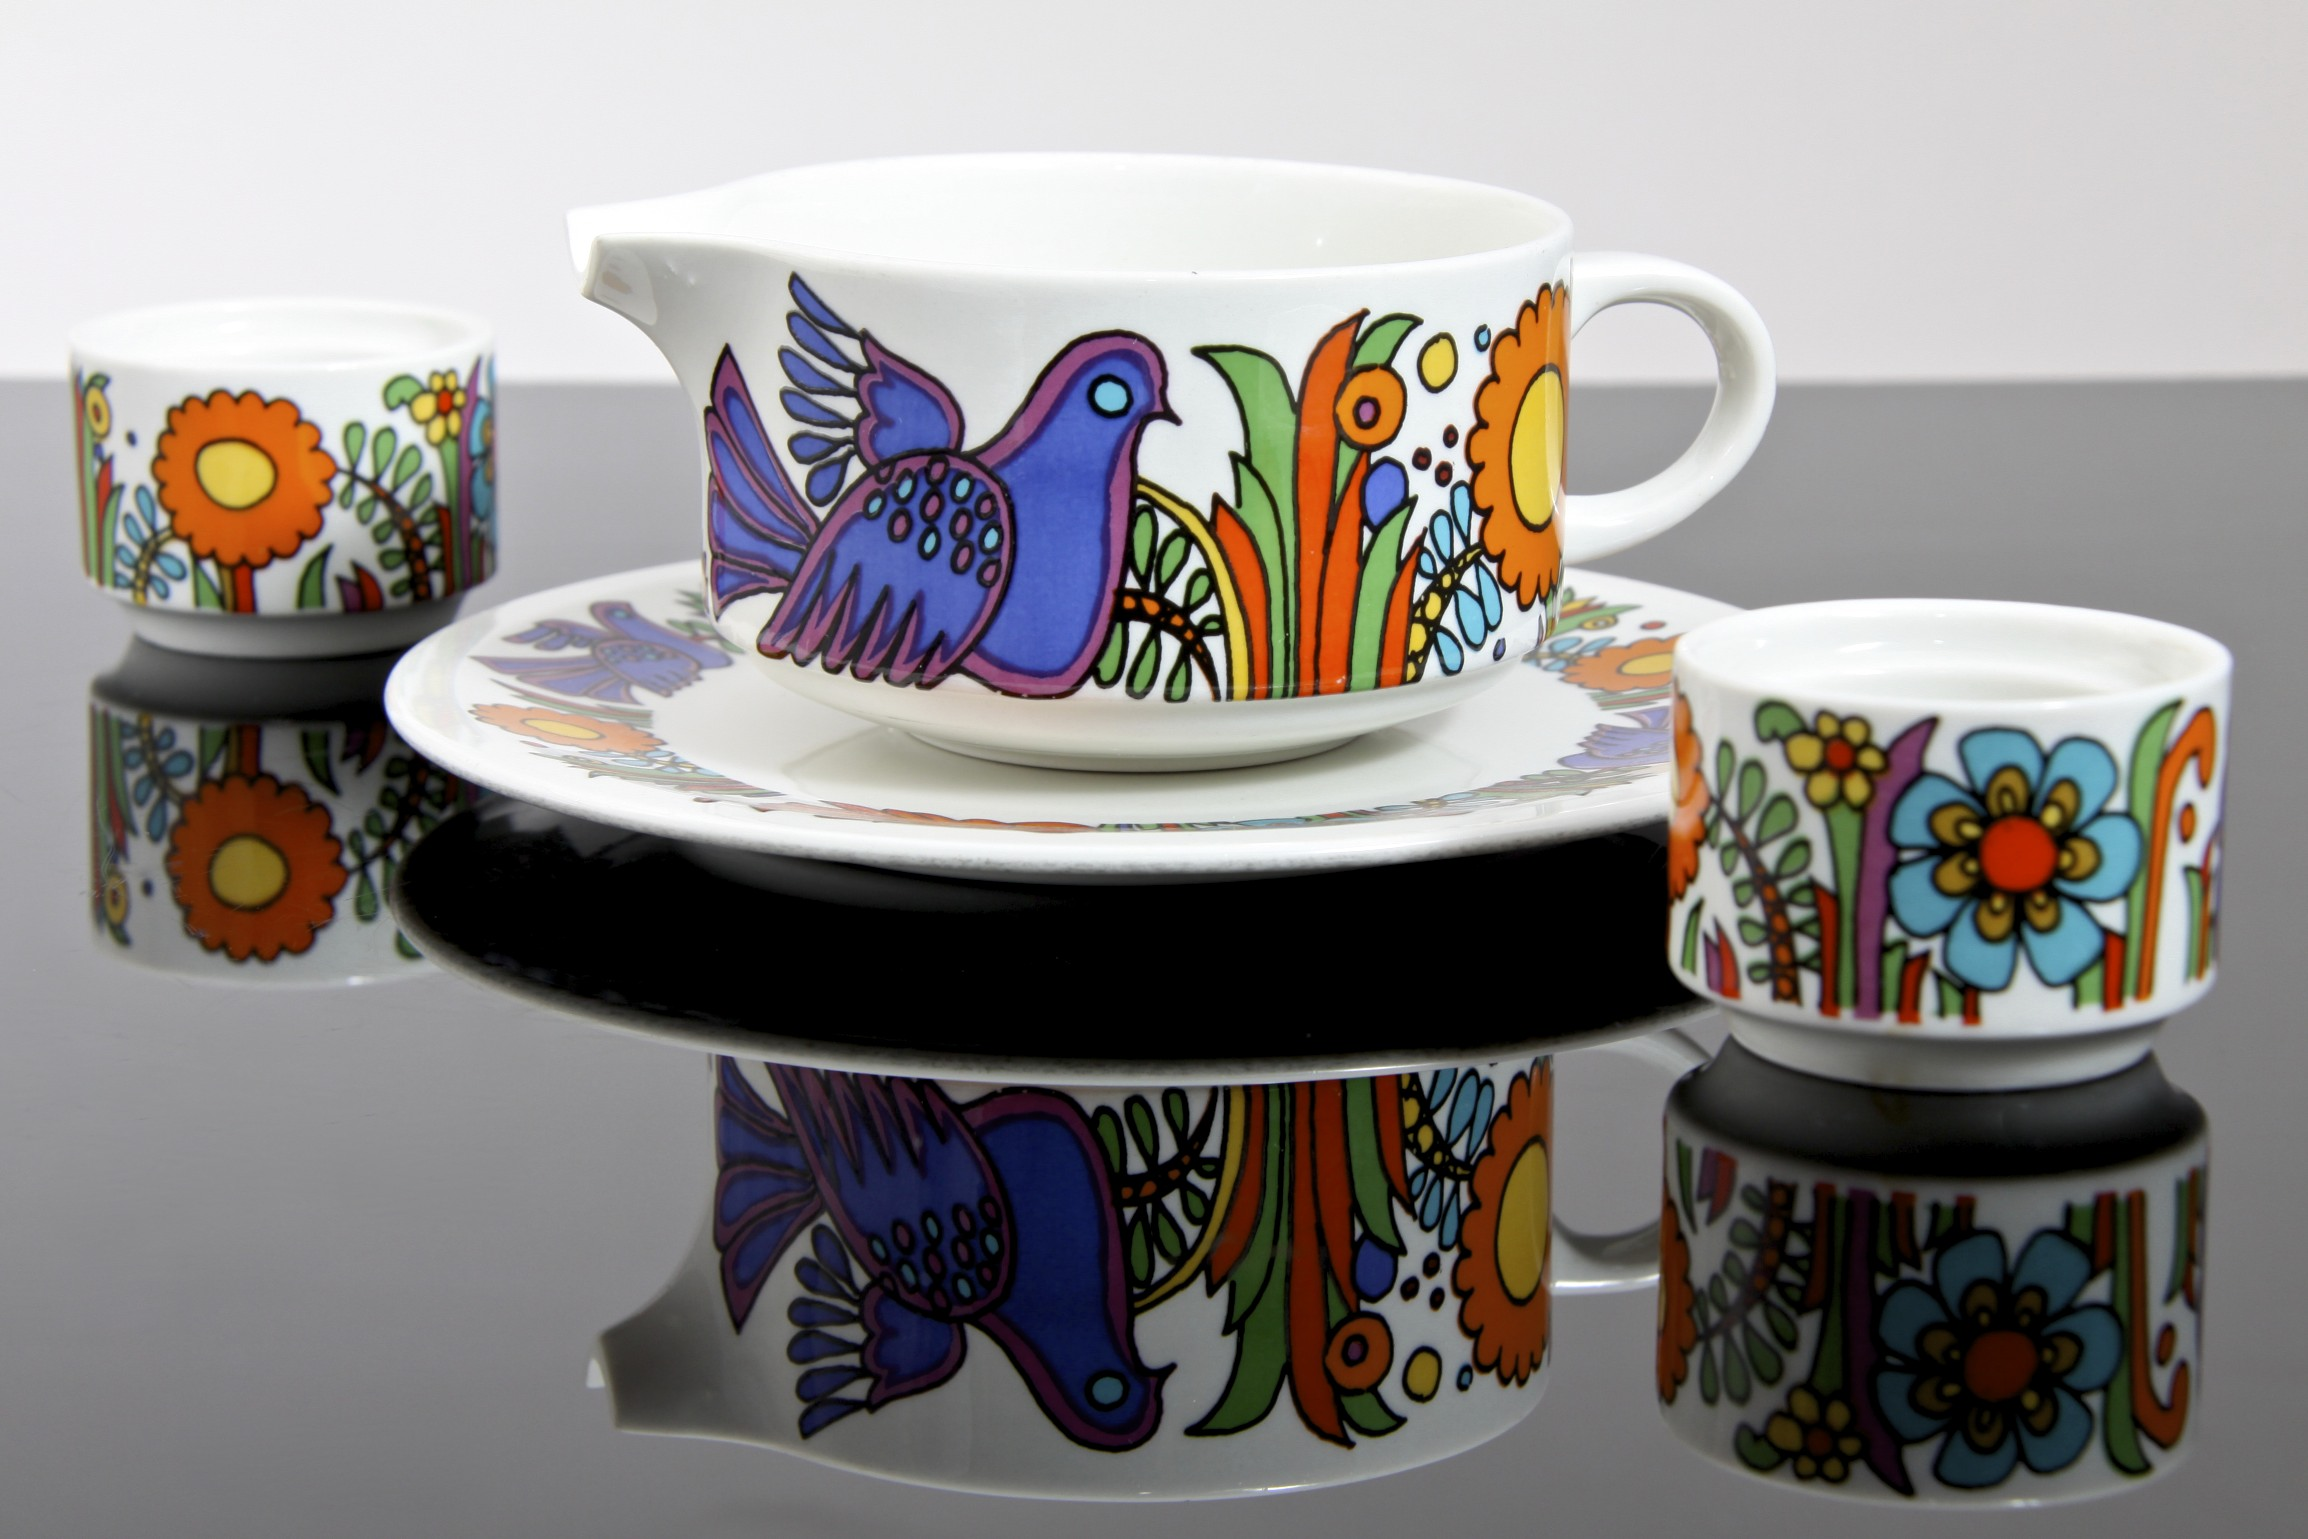 villeroy boch acapulco tableware transfer printed vitro porcelain luxembourg circa 1967. Black Bedroom Furniture Sets. Home Design Ideas